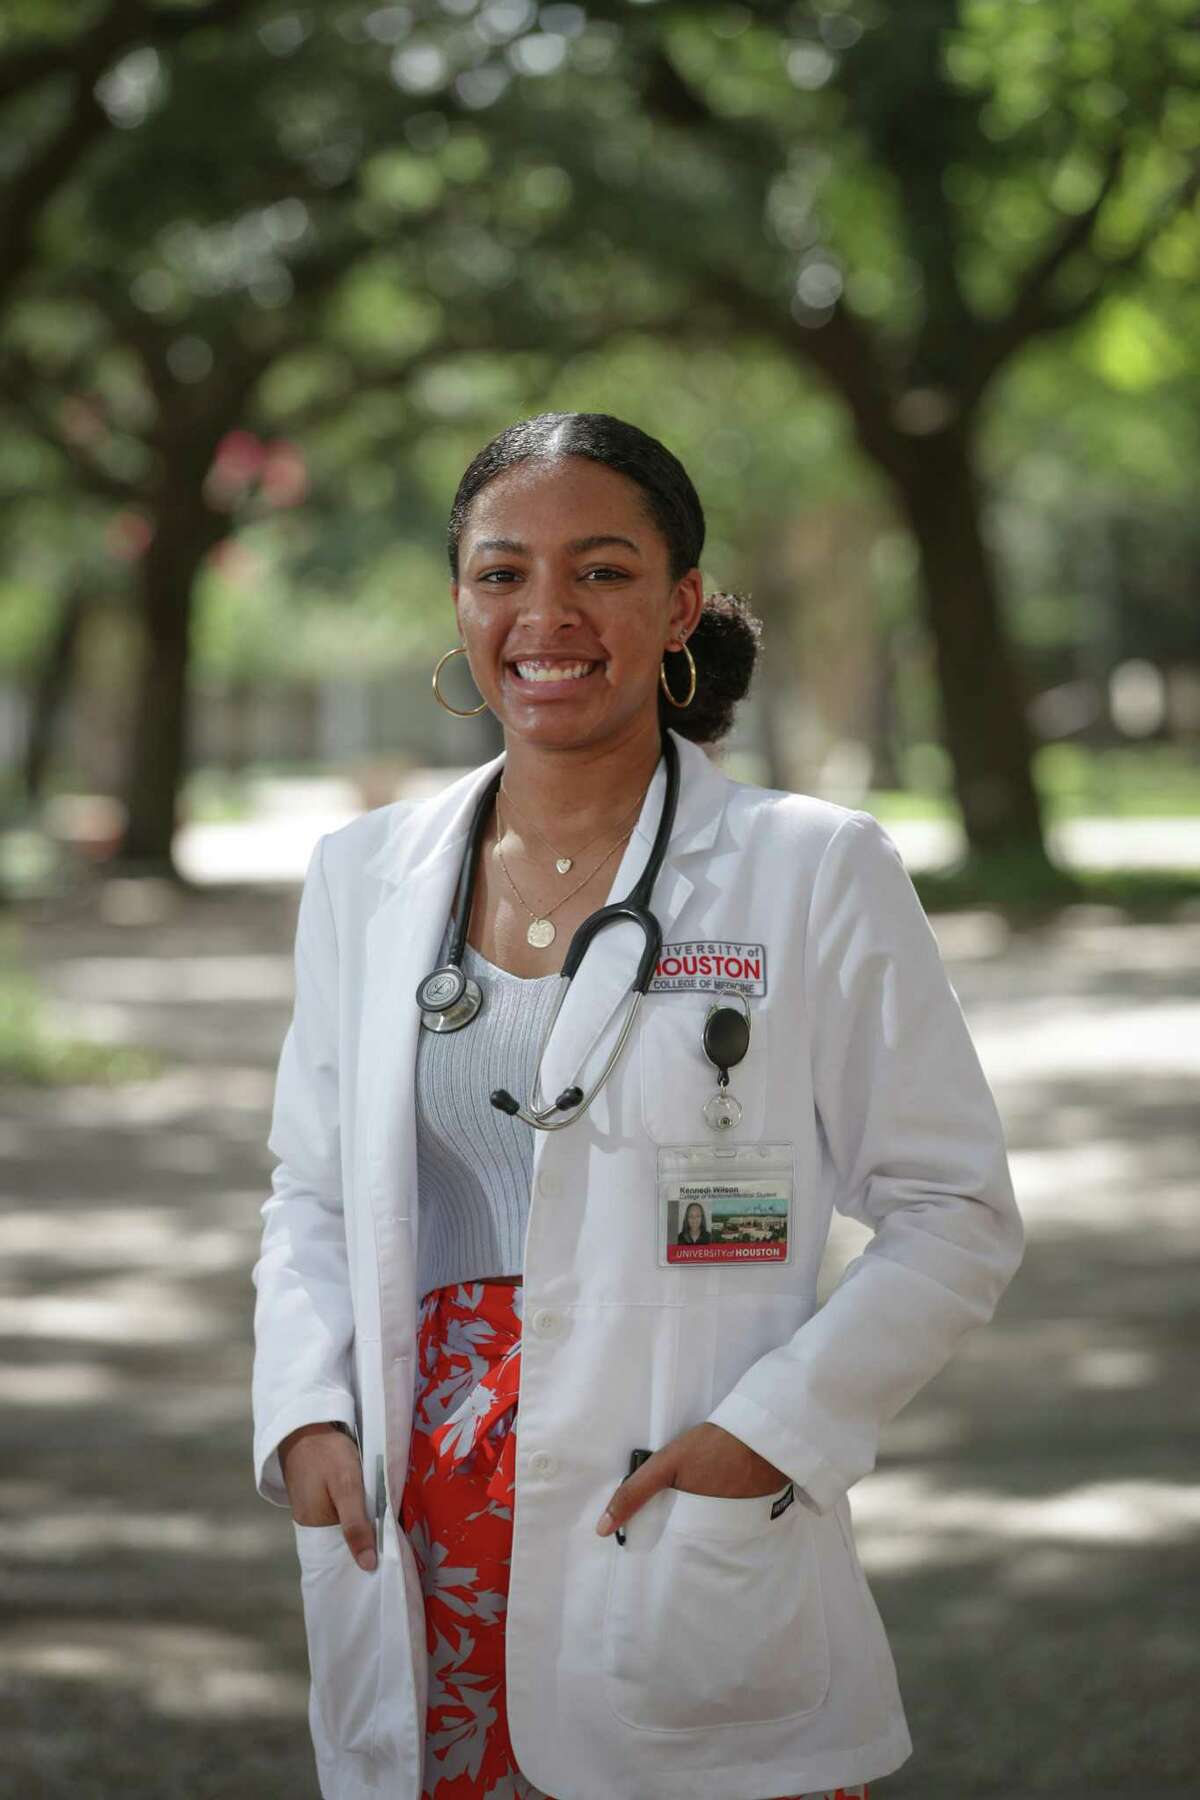 Kennedi Wilson is in the inaugural class of the University of Houston College of Medicine Thursday, June 24, 2021, in Houston.